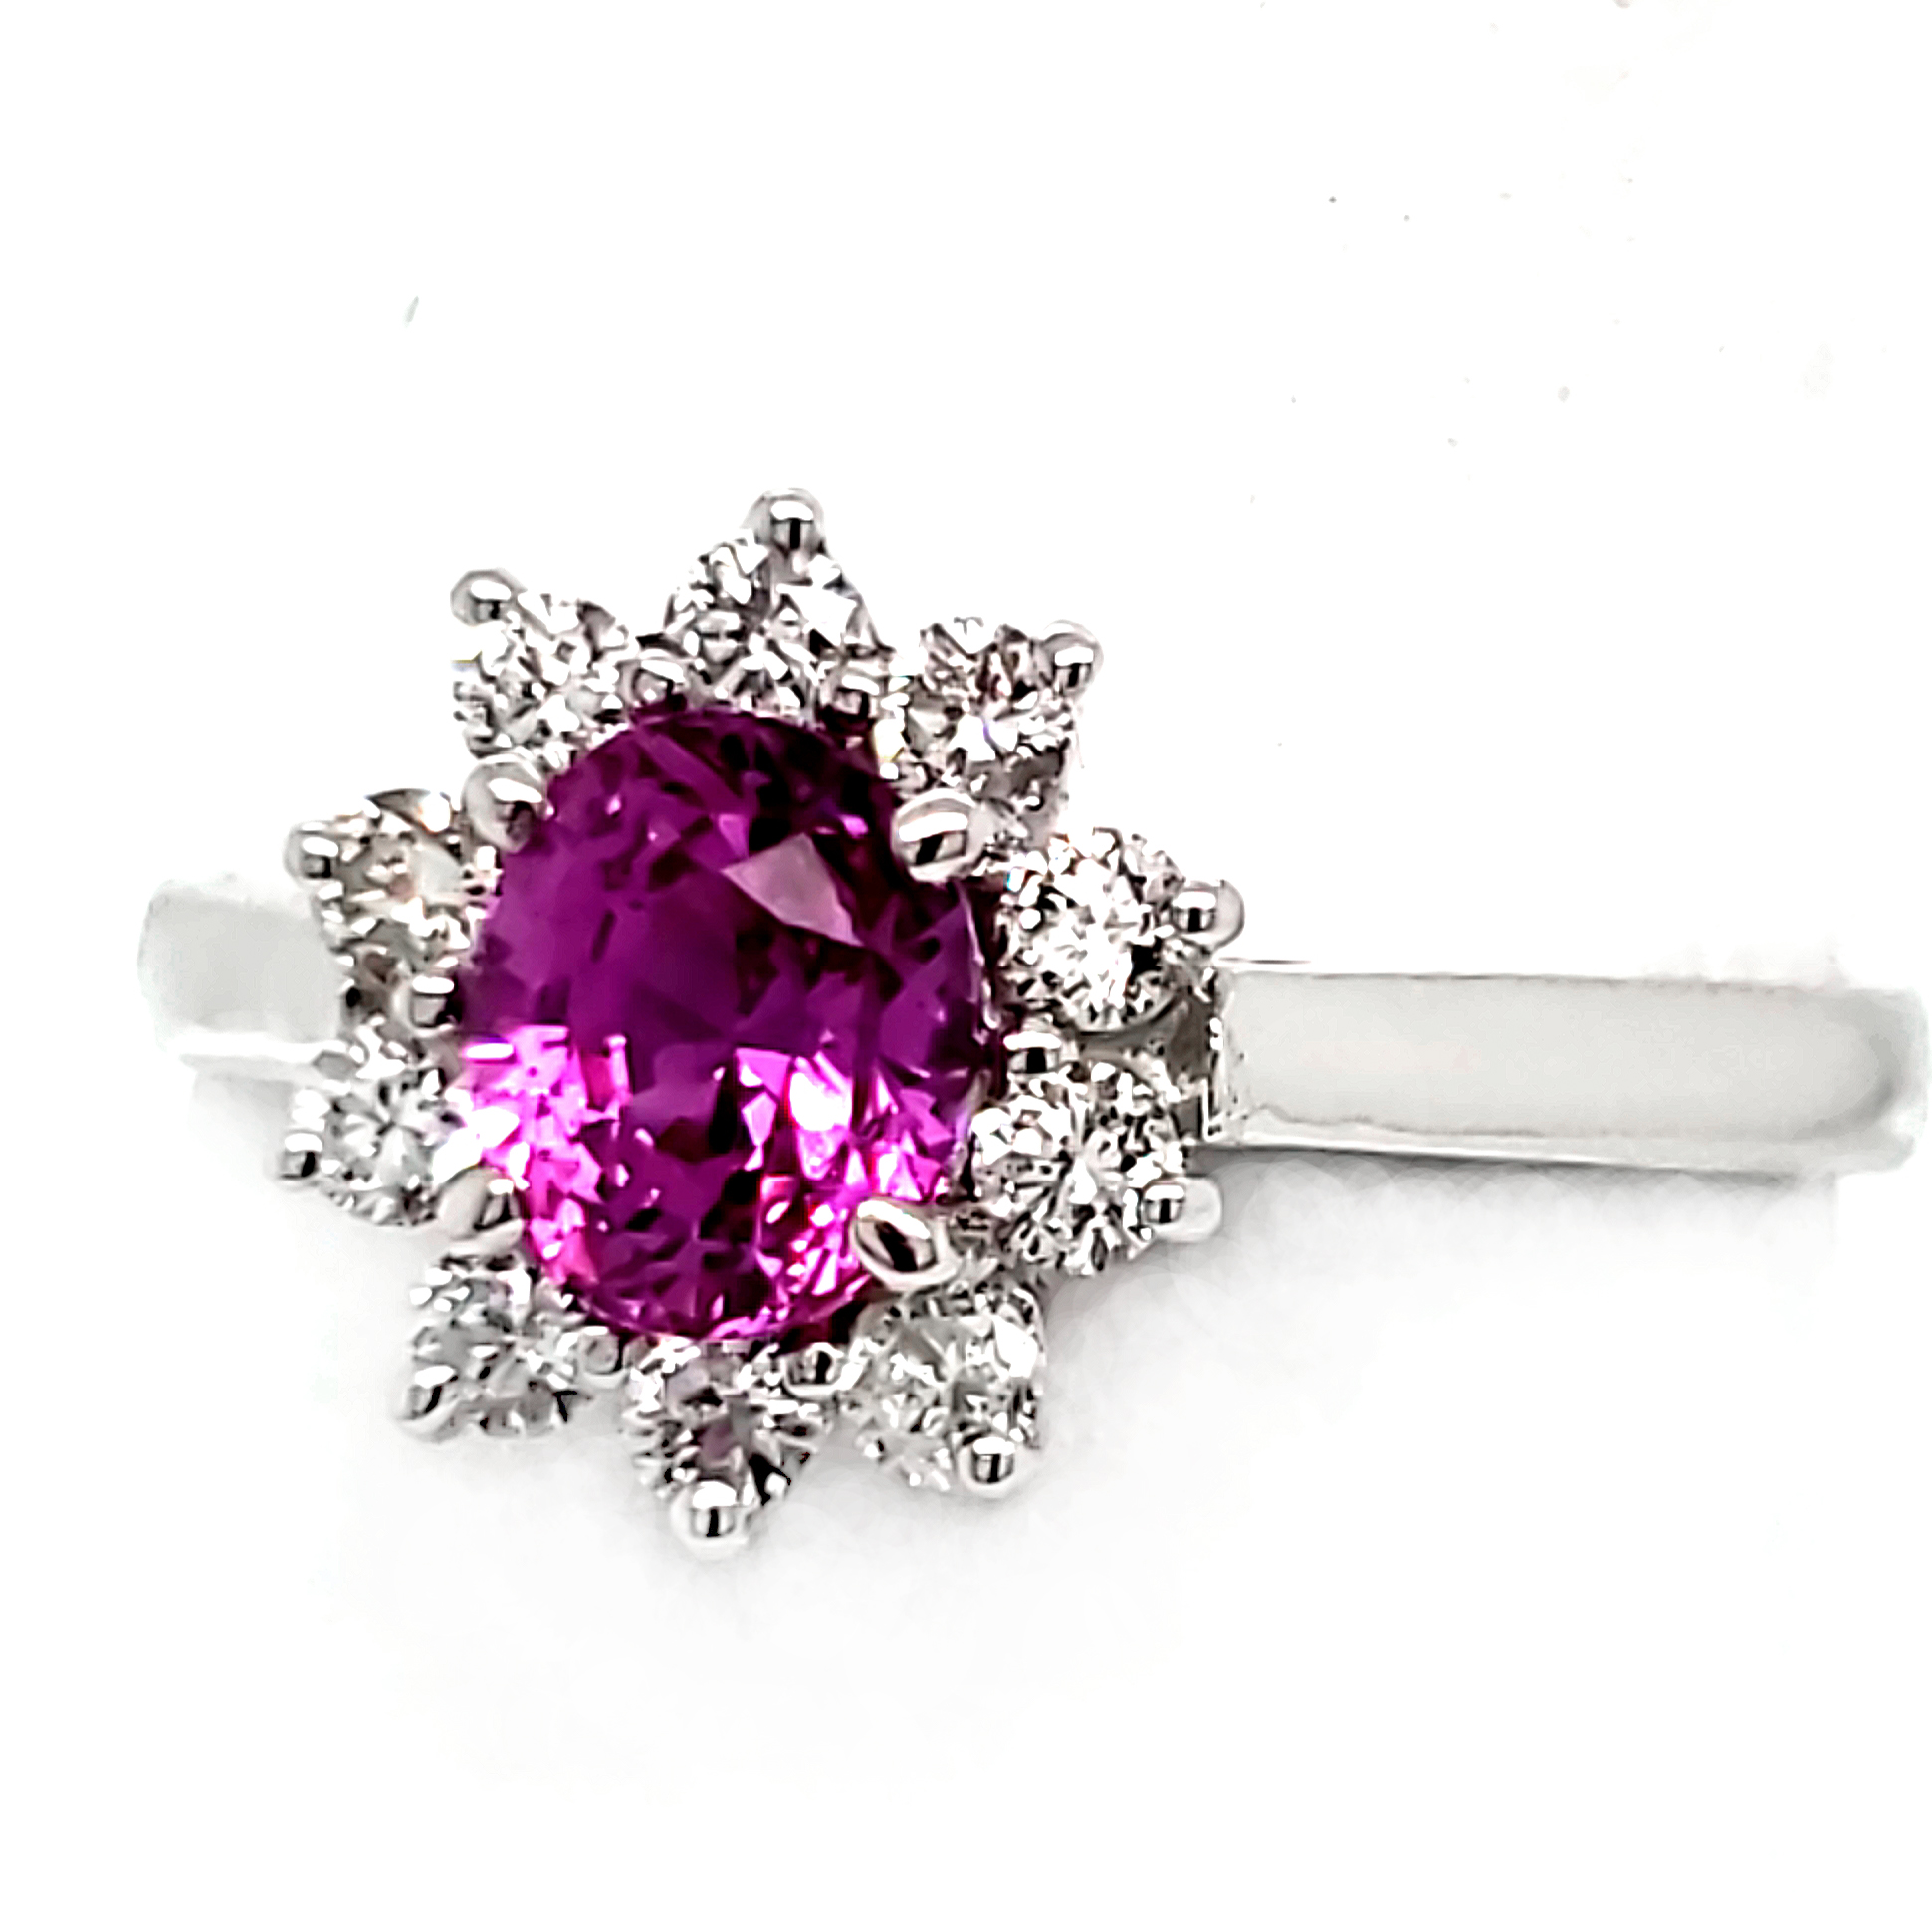 .96 ct. Magenta Sapphire and Diamond 14k white gold ring right side